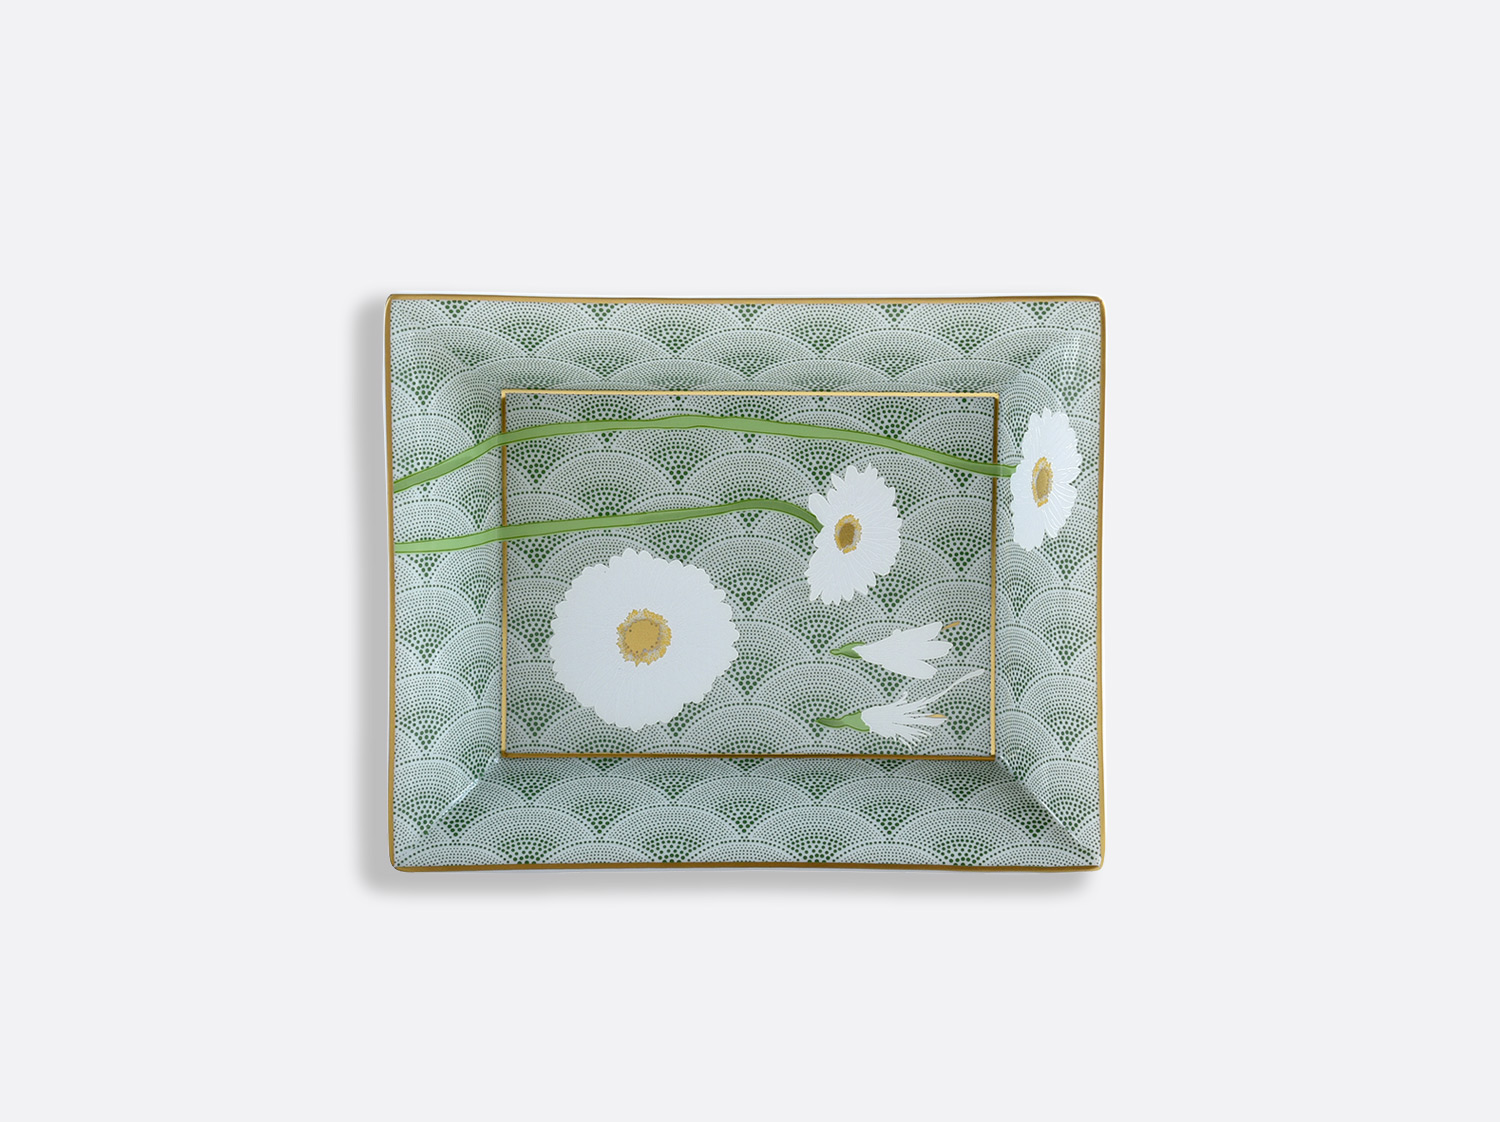 China Valet Tray 20 x 16 cm of the collection PRAIANA | Bernardaud